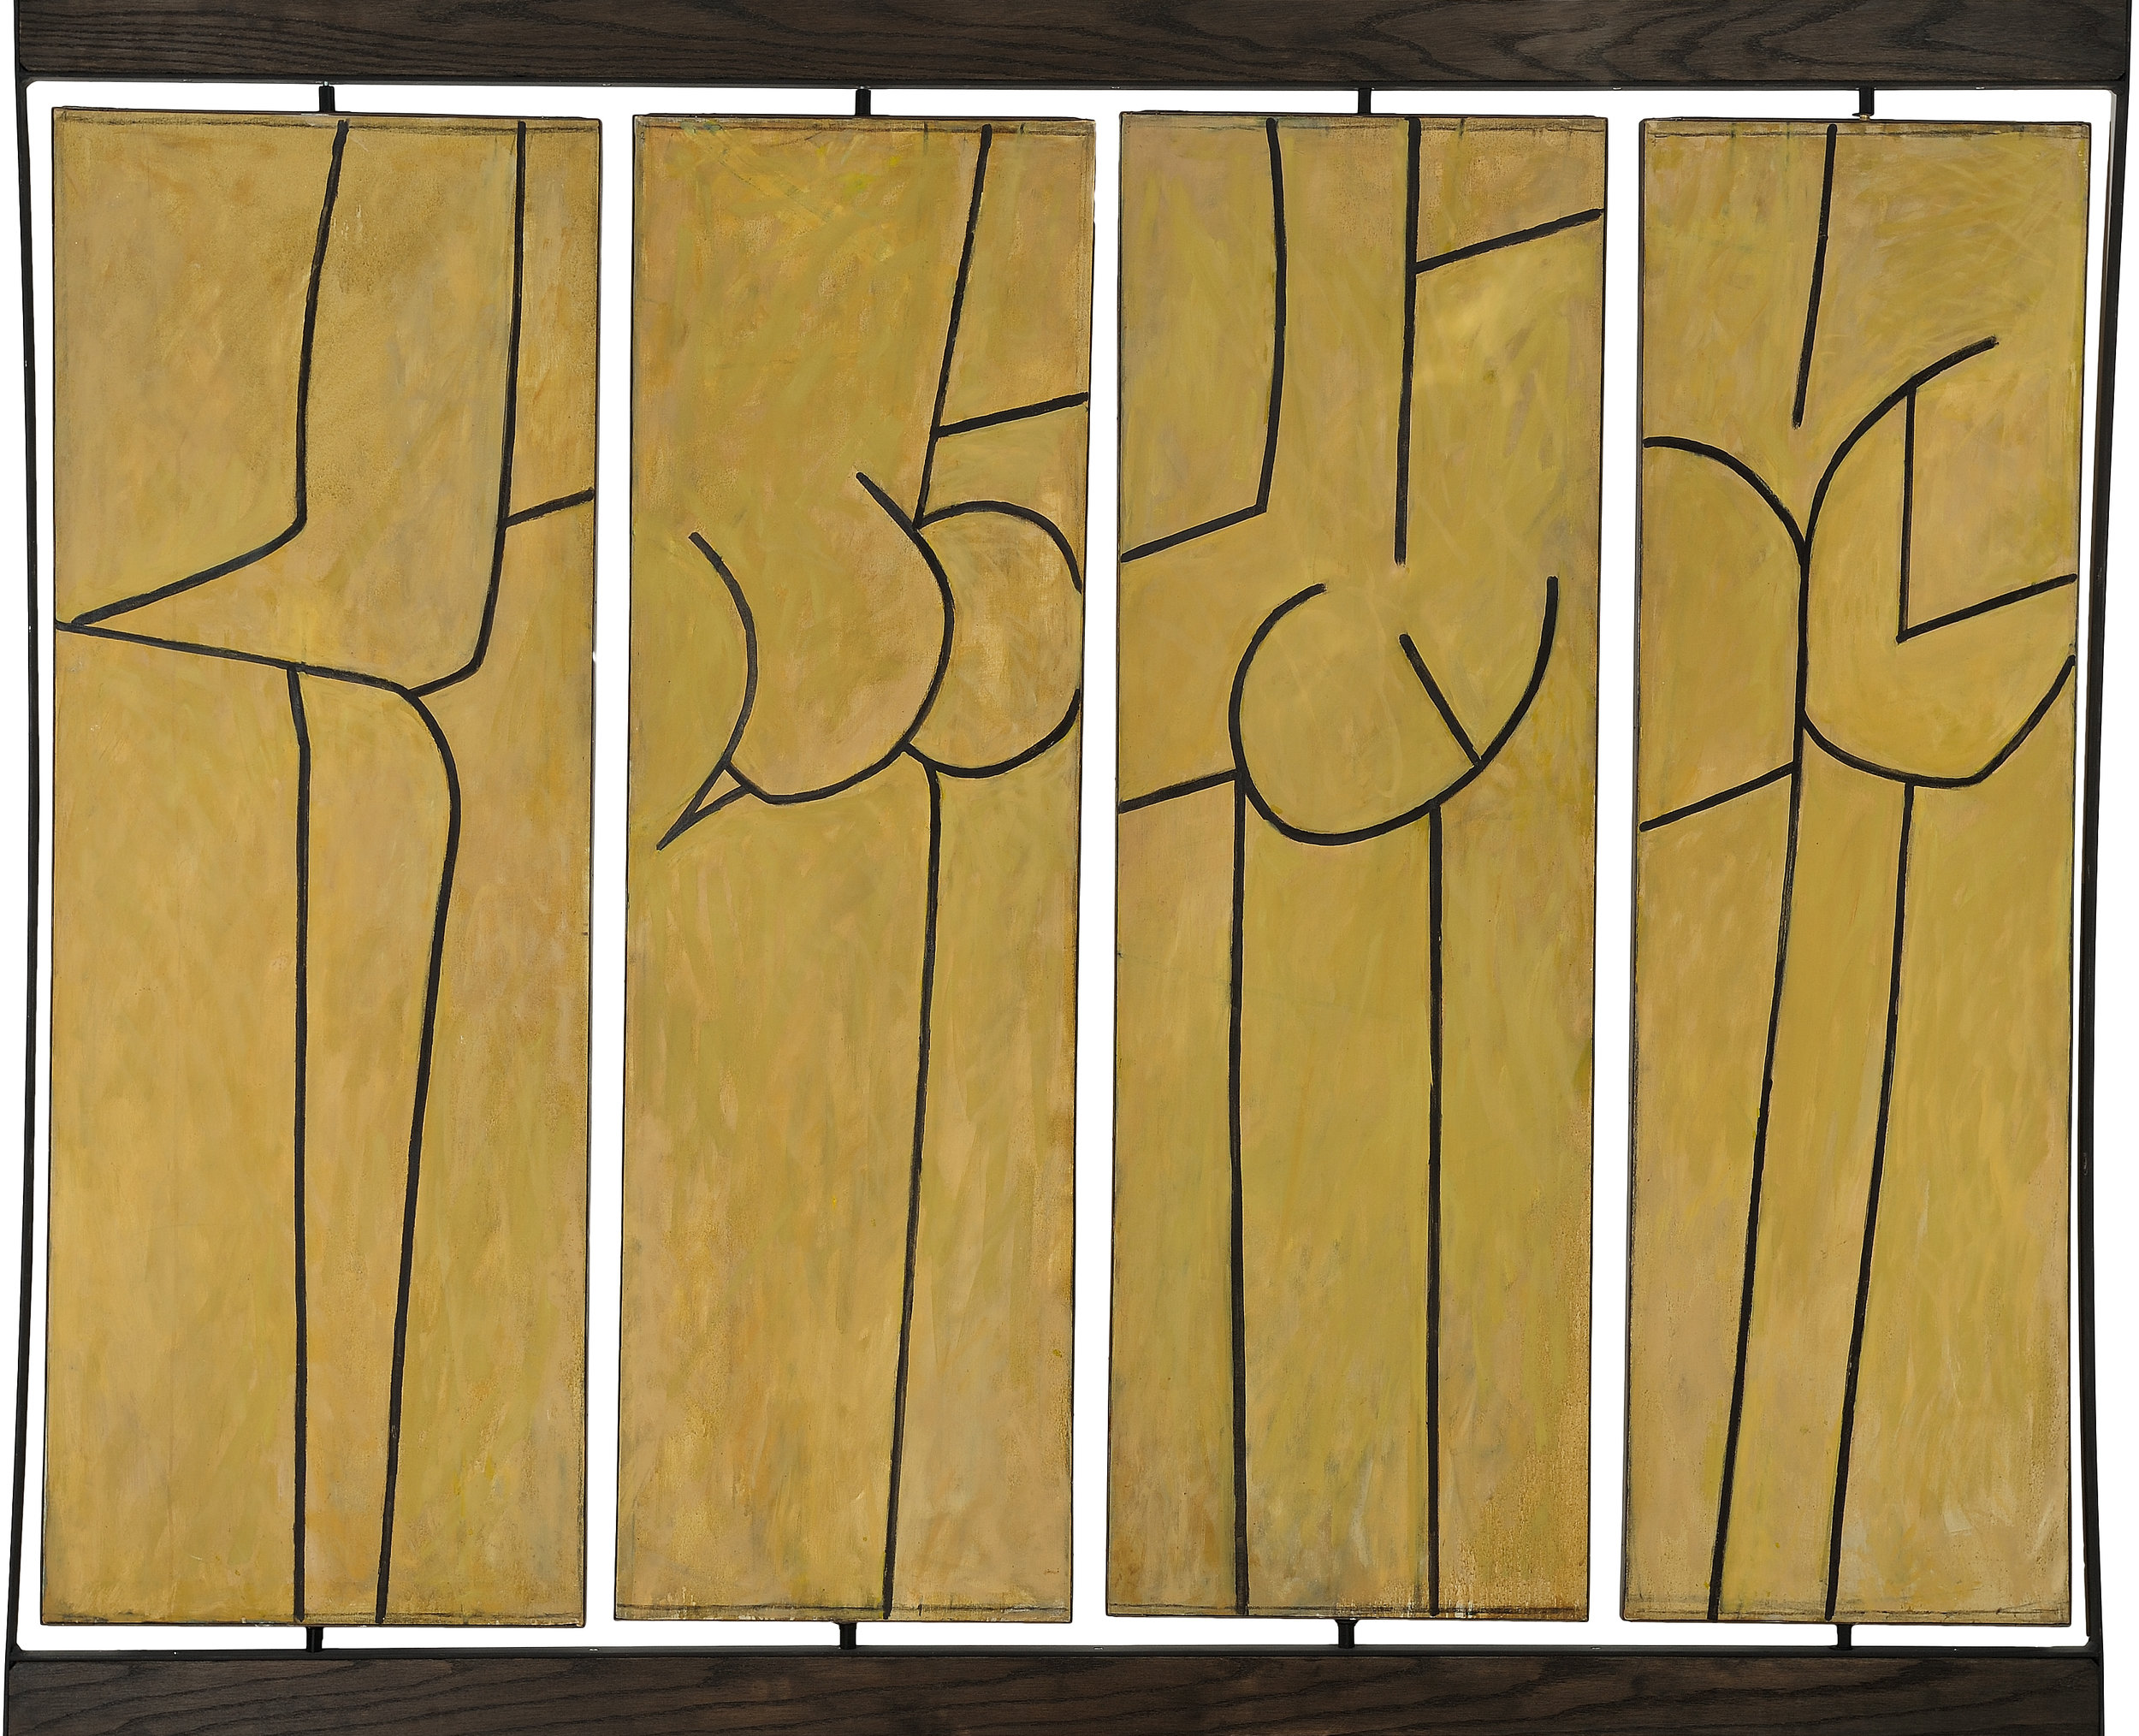 Reversible Quadriptych (Martha's Dancers) , 1963, Oil and charcoal on canvas (four panels, reversible), Overall (including armature: 72 x 78 1/4 in. (182.9 x 198.8 cm) Collection of the Estate of Irving Kriesberg